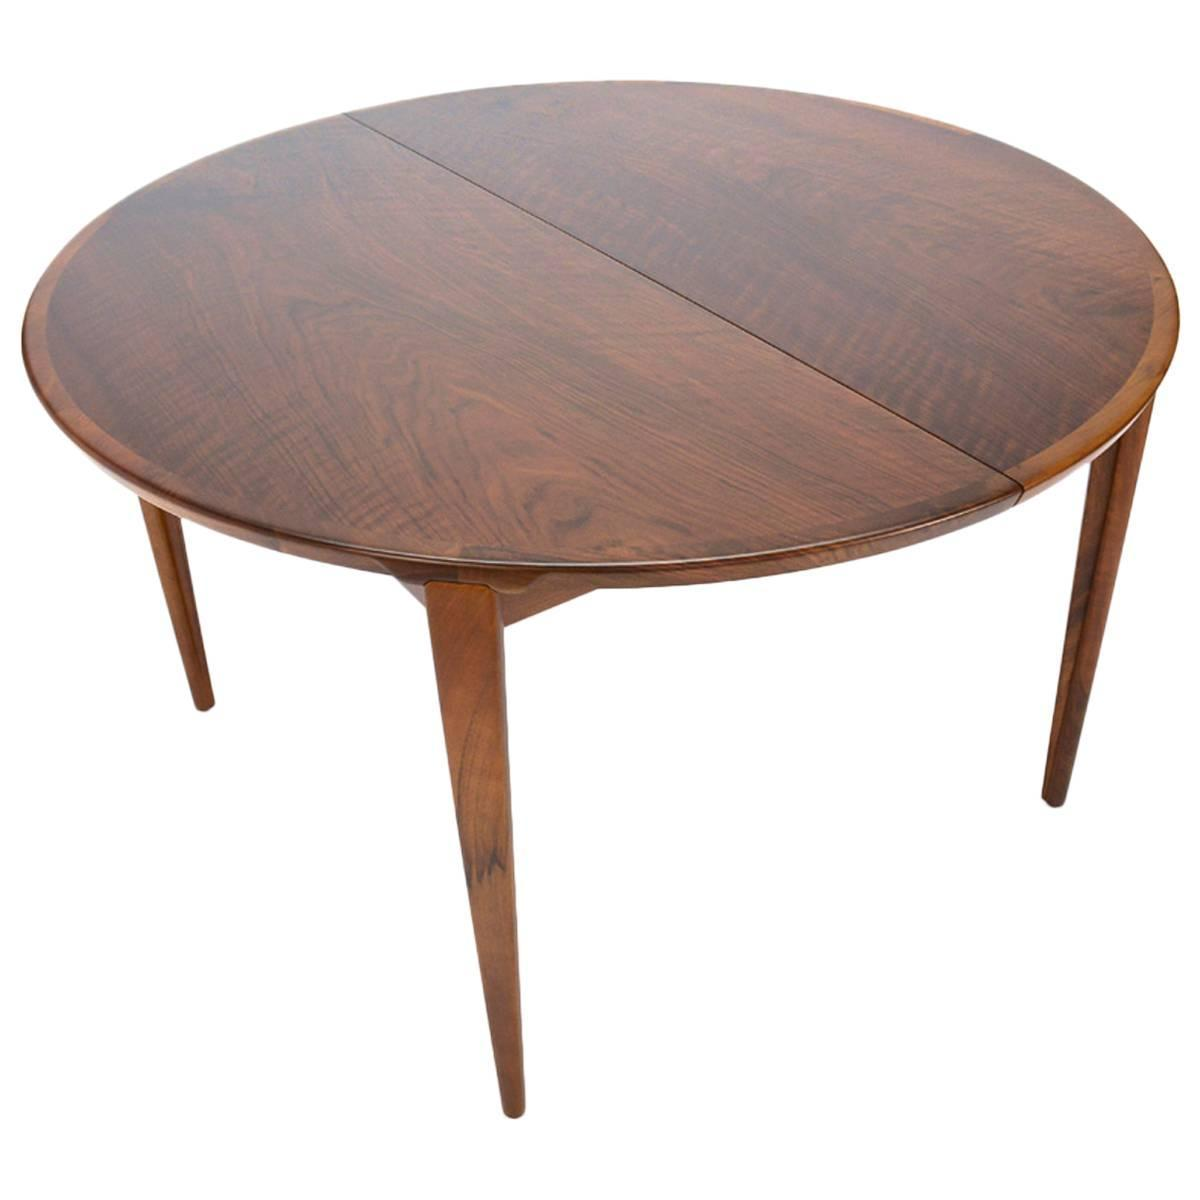 Round Walnut Dining Table By Rosengren Hansen At 1stdibs